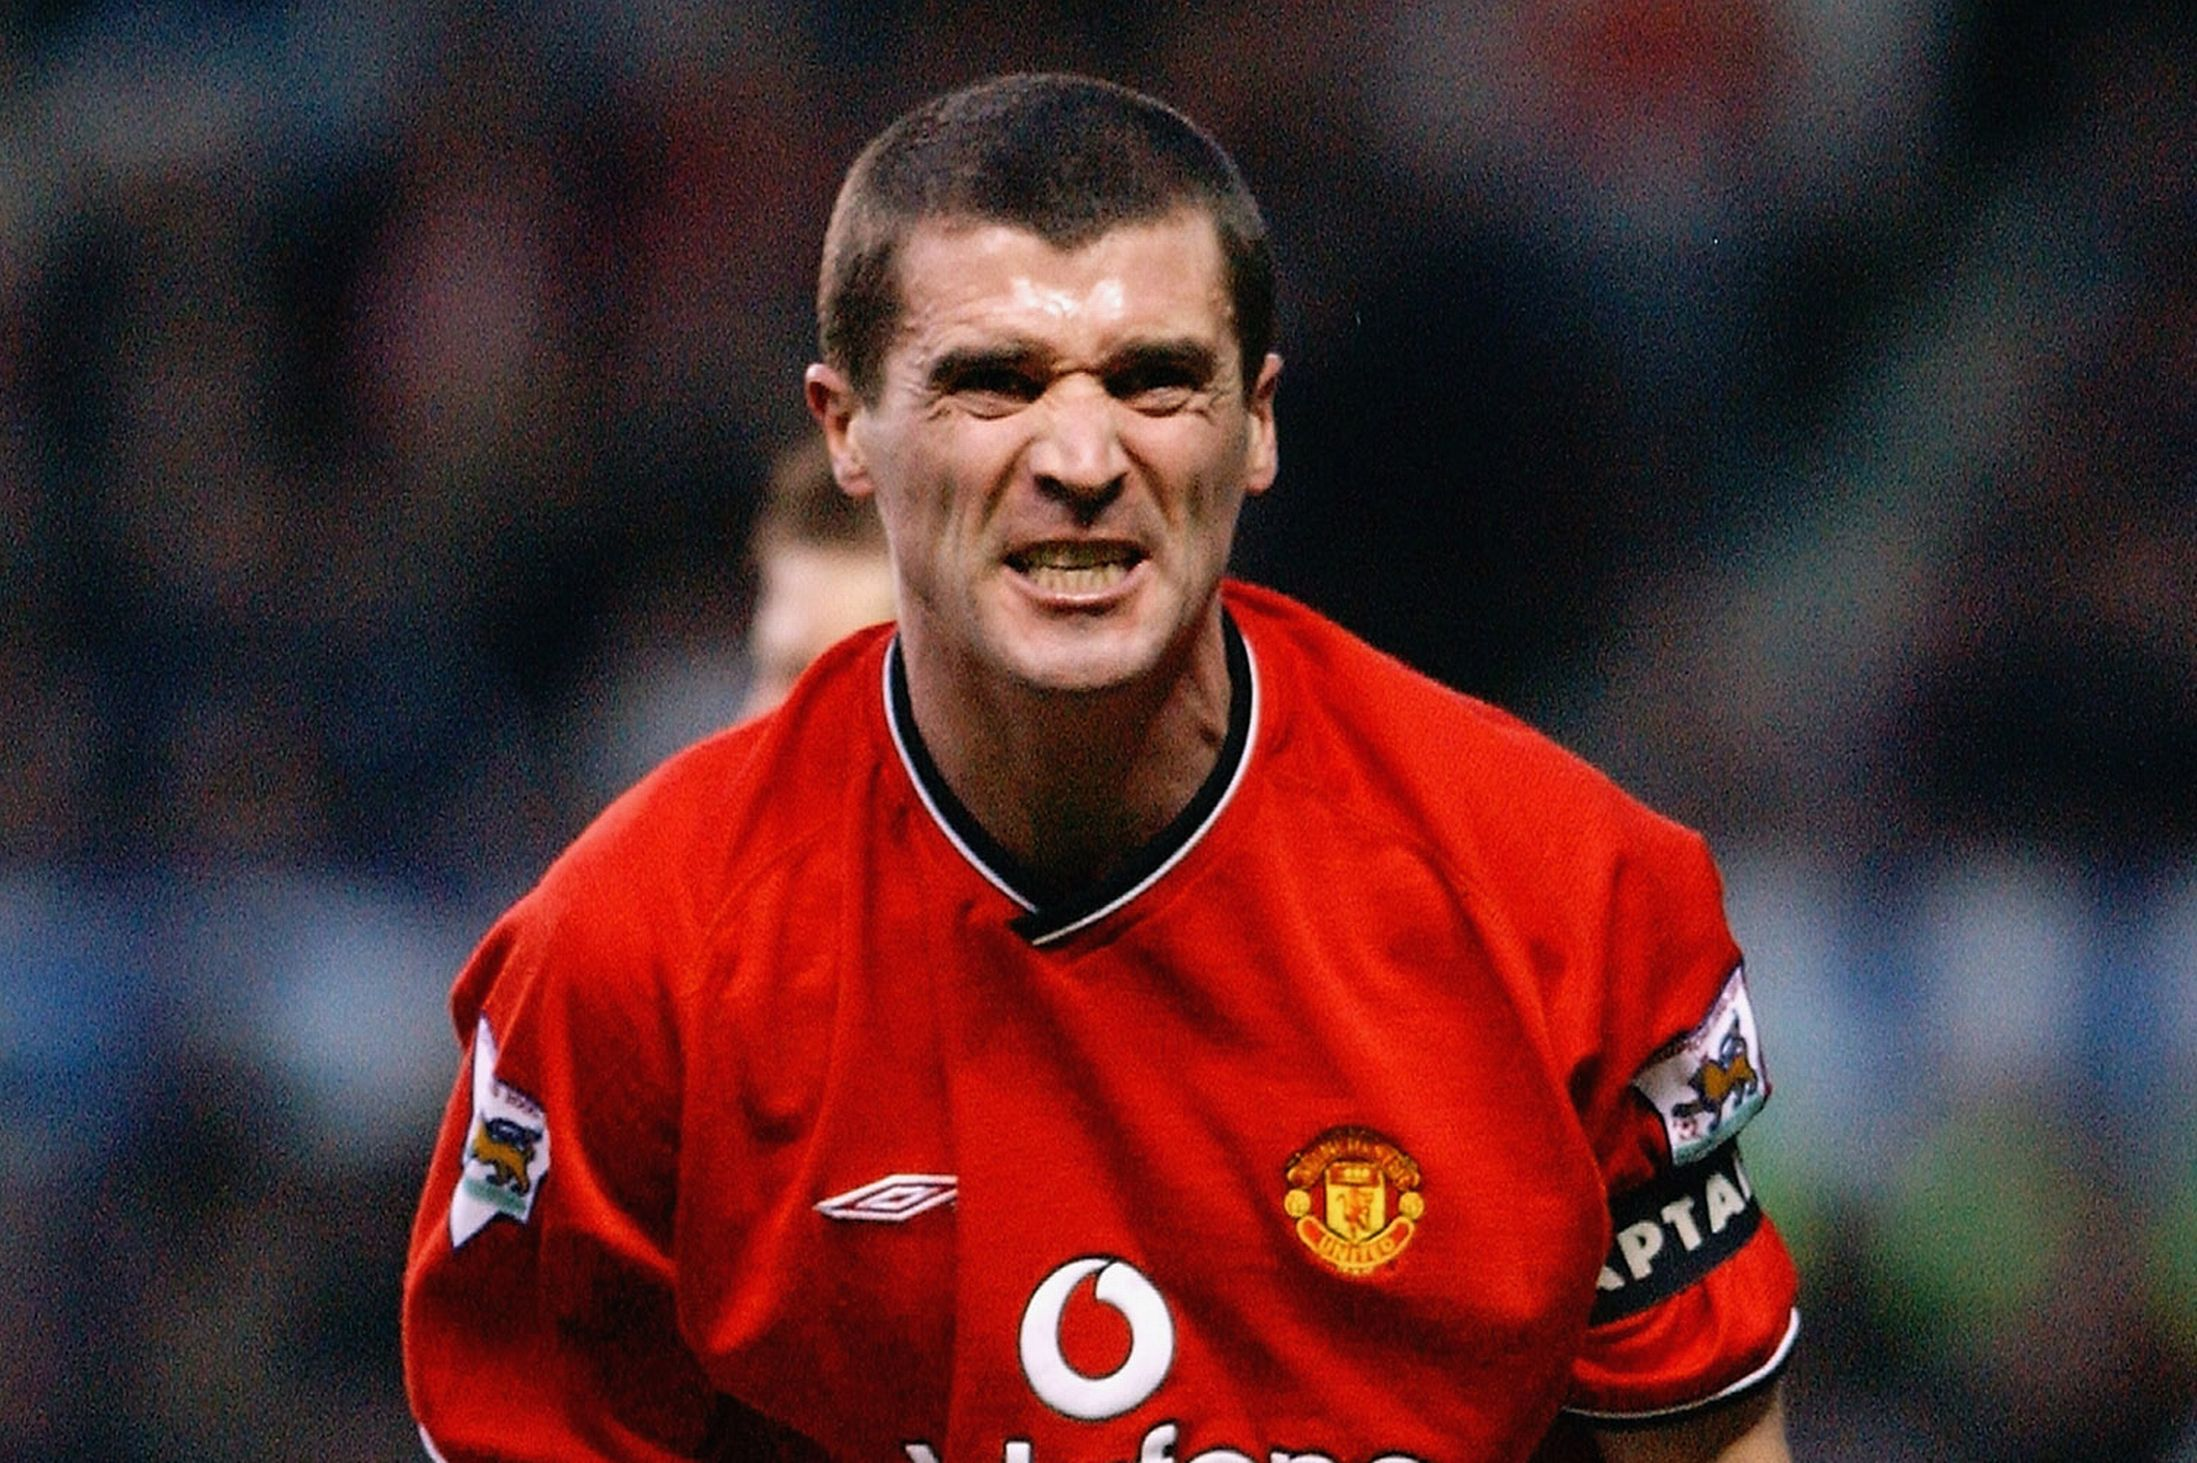 Legends of Club Football Roy Keane